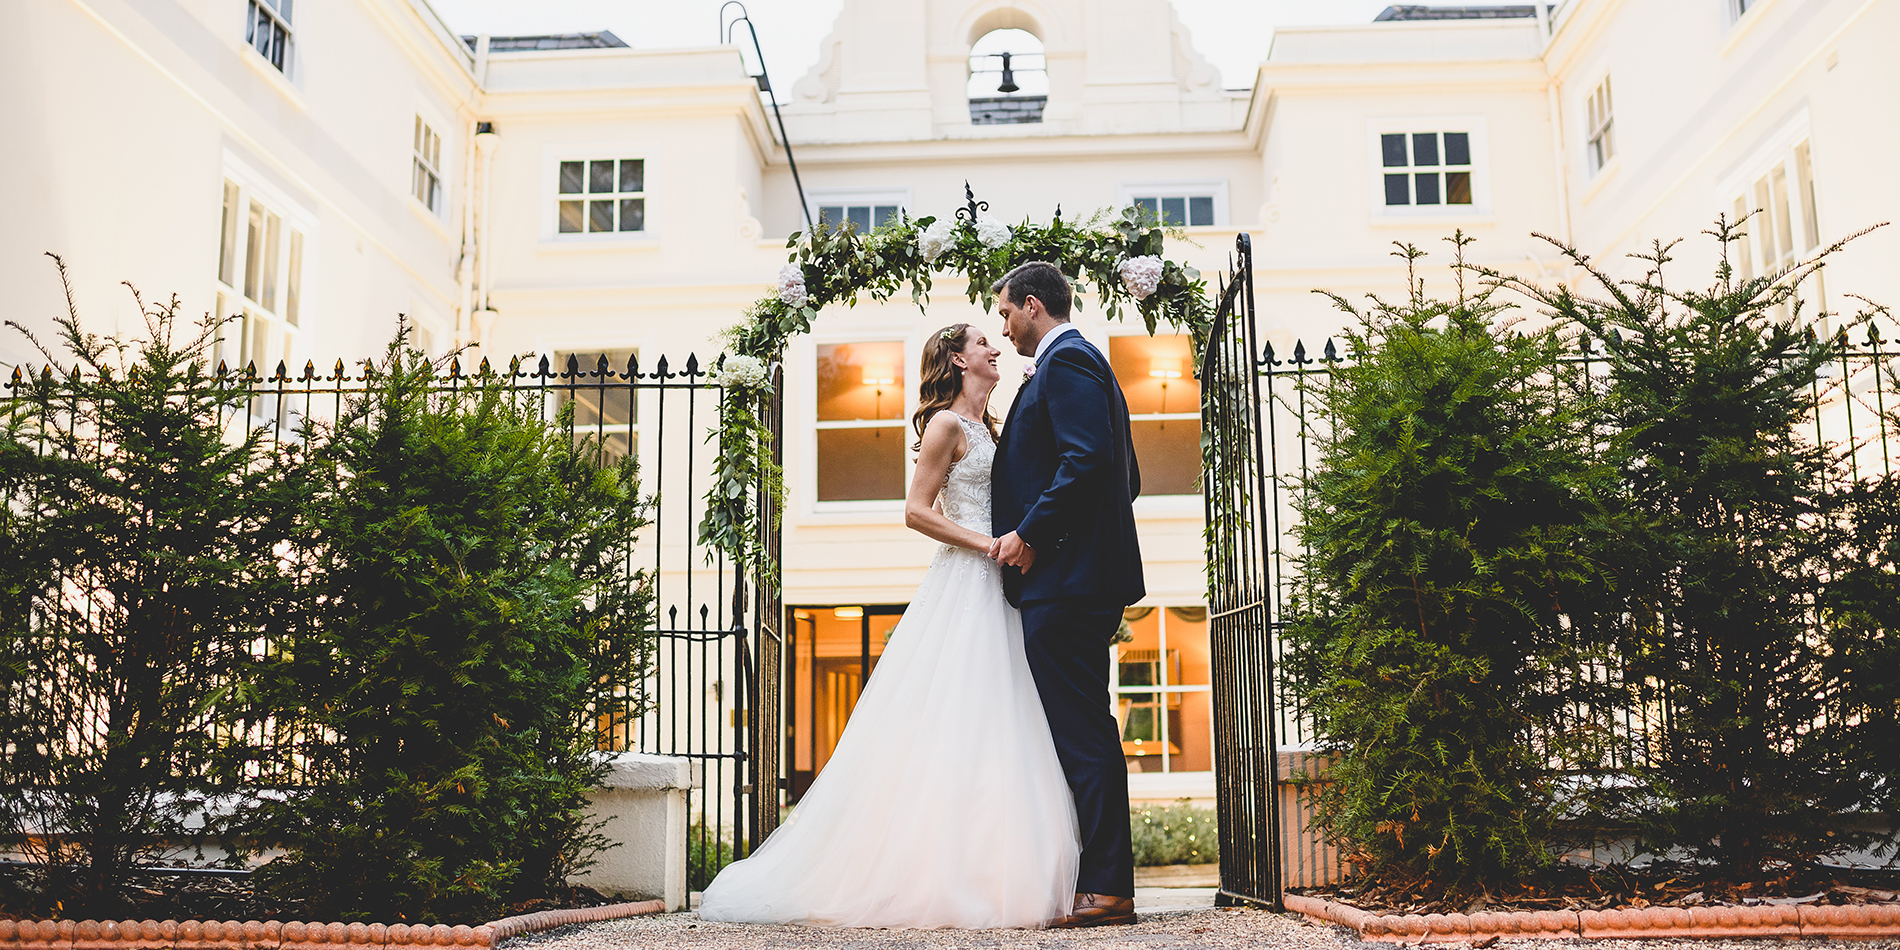 Bride and groom having a special moment at Morden Hall country house in London